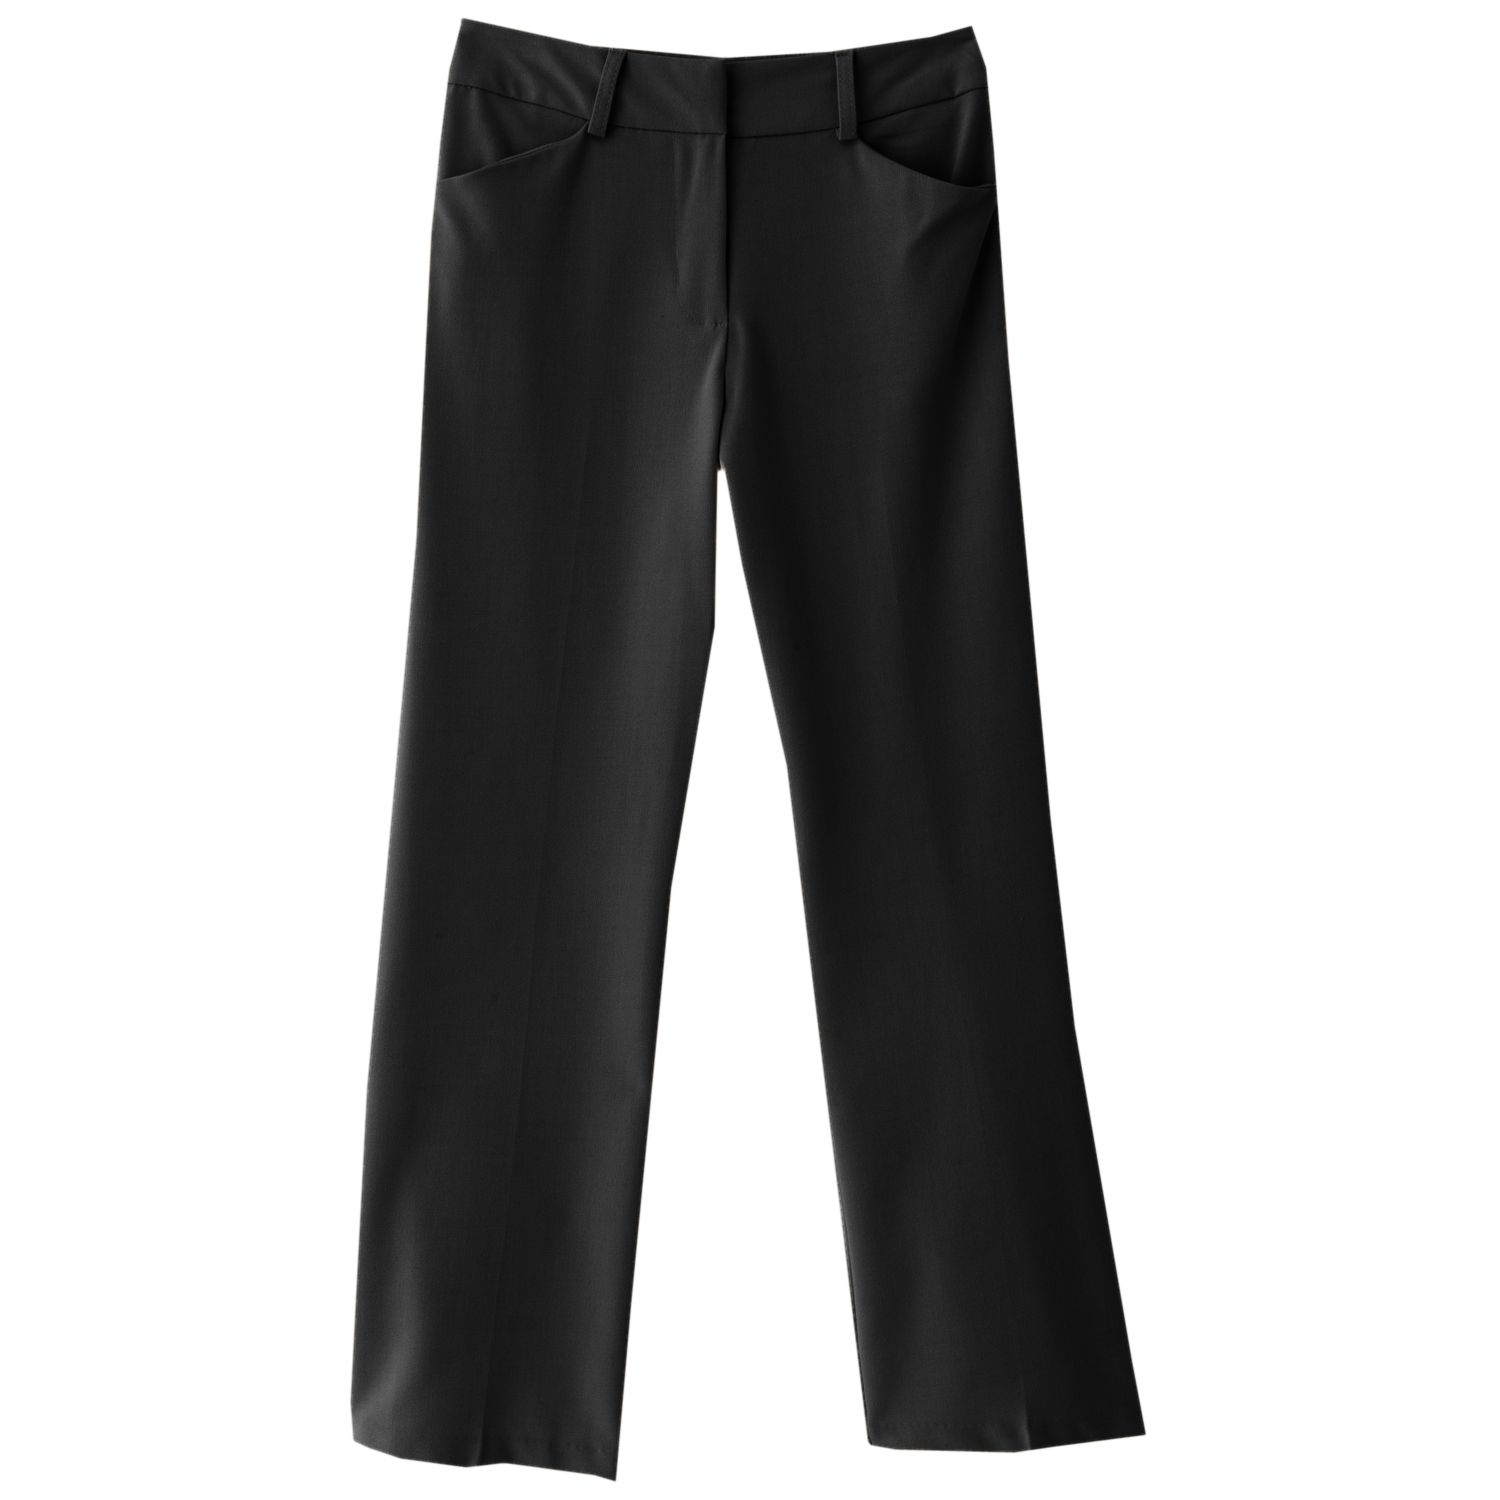 Girls Black Dress Pants sddmtRhI